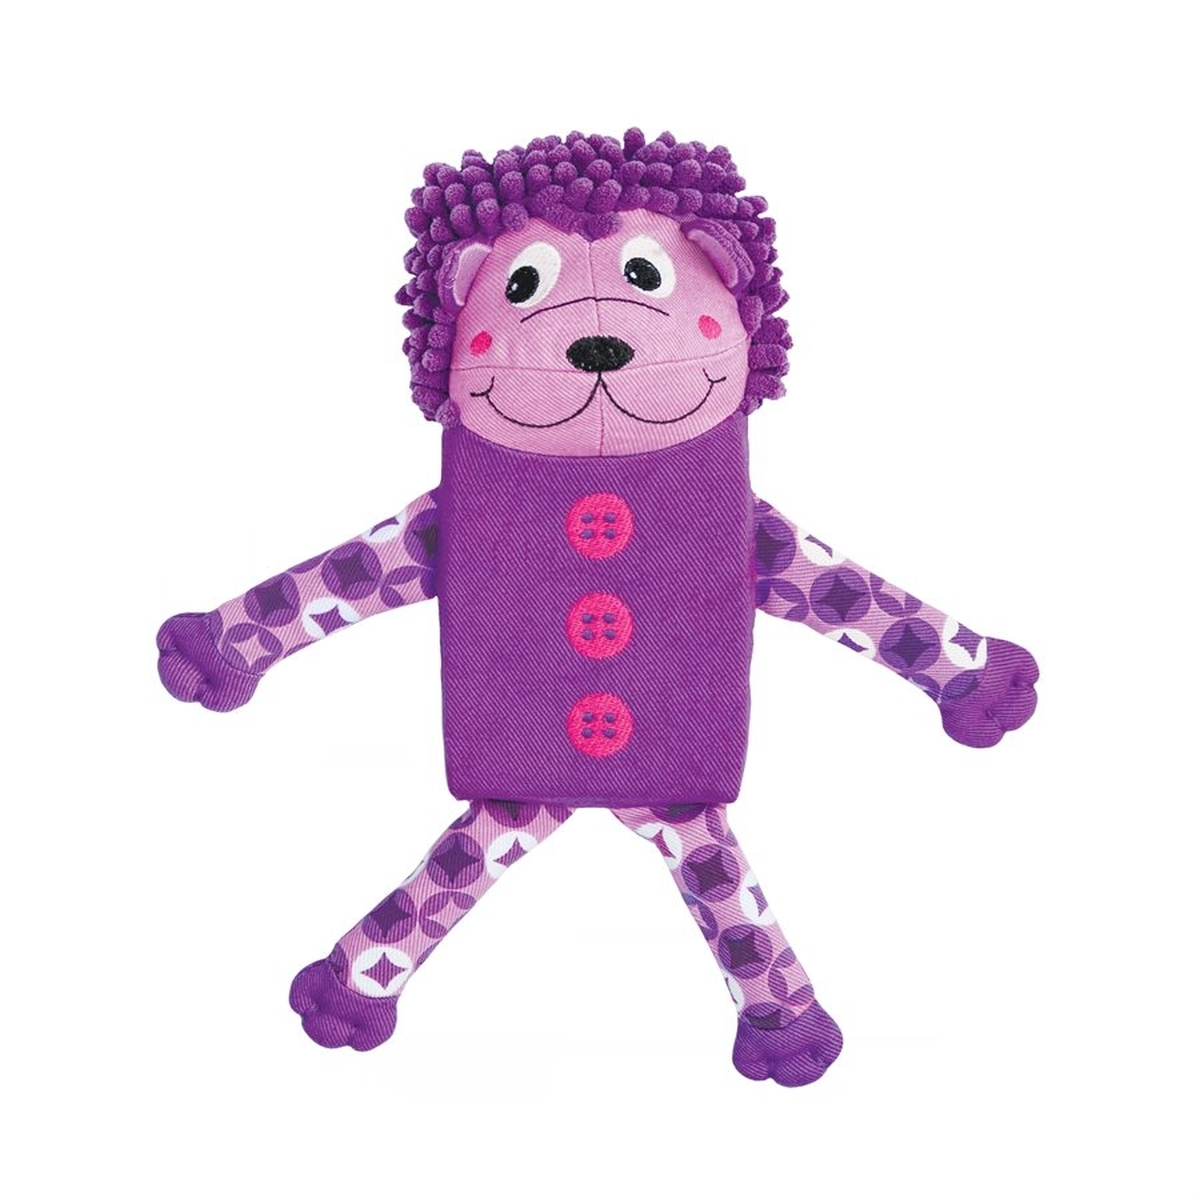 Zillowz hedgehog purple paars